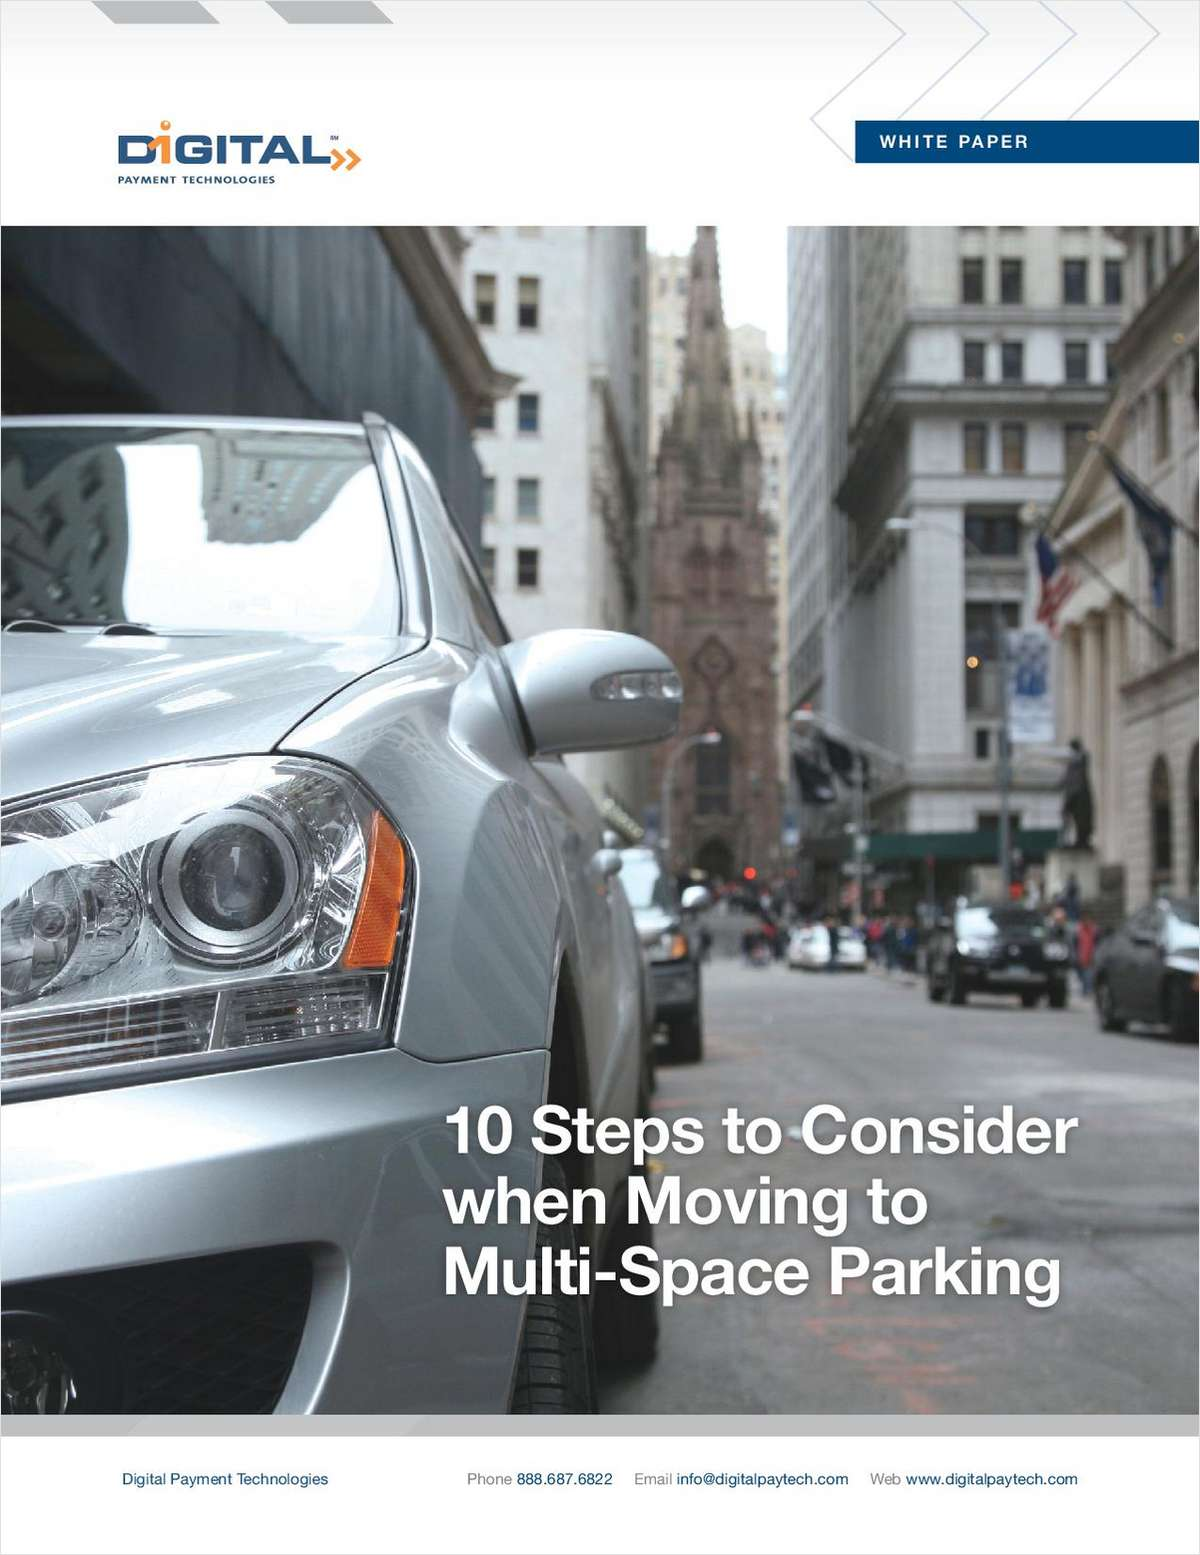 10 Steps to Consider when Moving to Multi-Space Parking